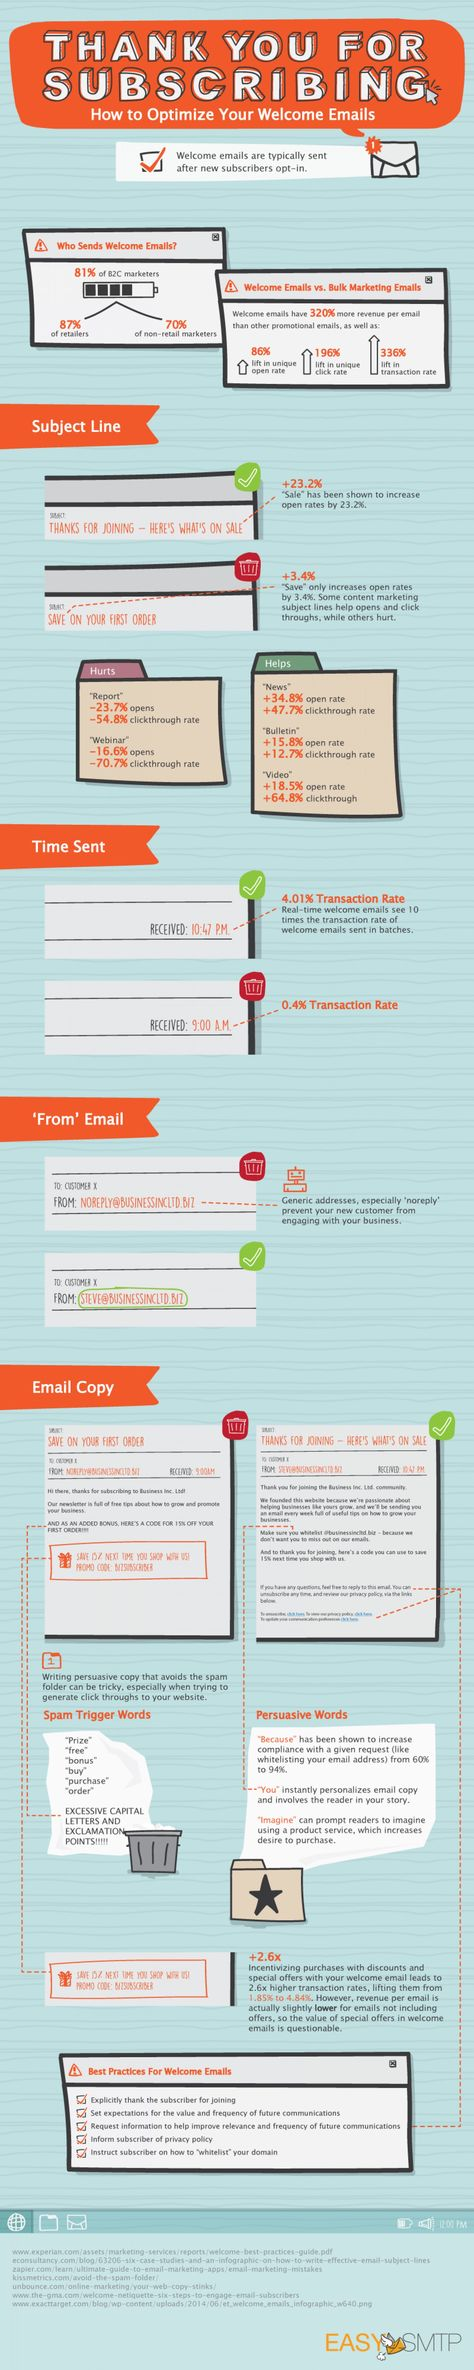 Thank You for Subscribing: How to Optimize Your Welcome Emails